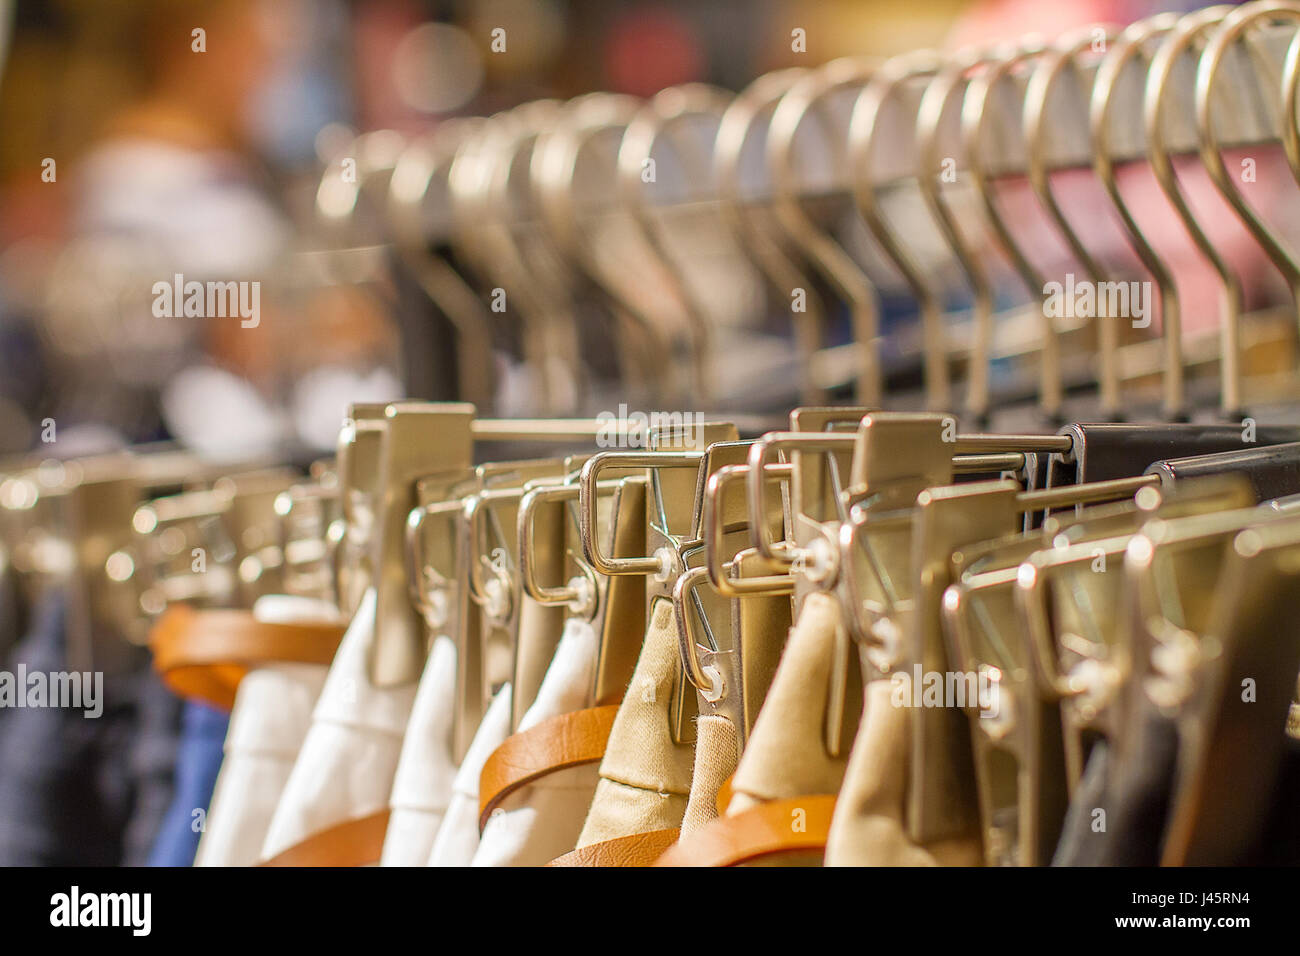 a Preview ladies skirts hanging on display c - Stock Image